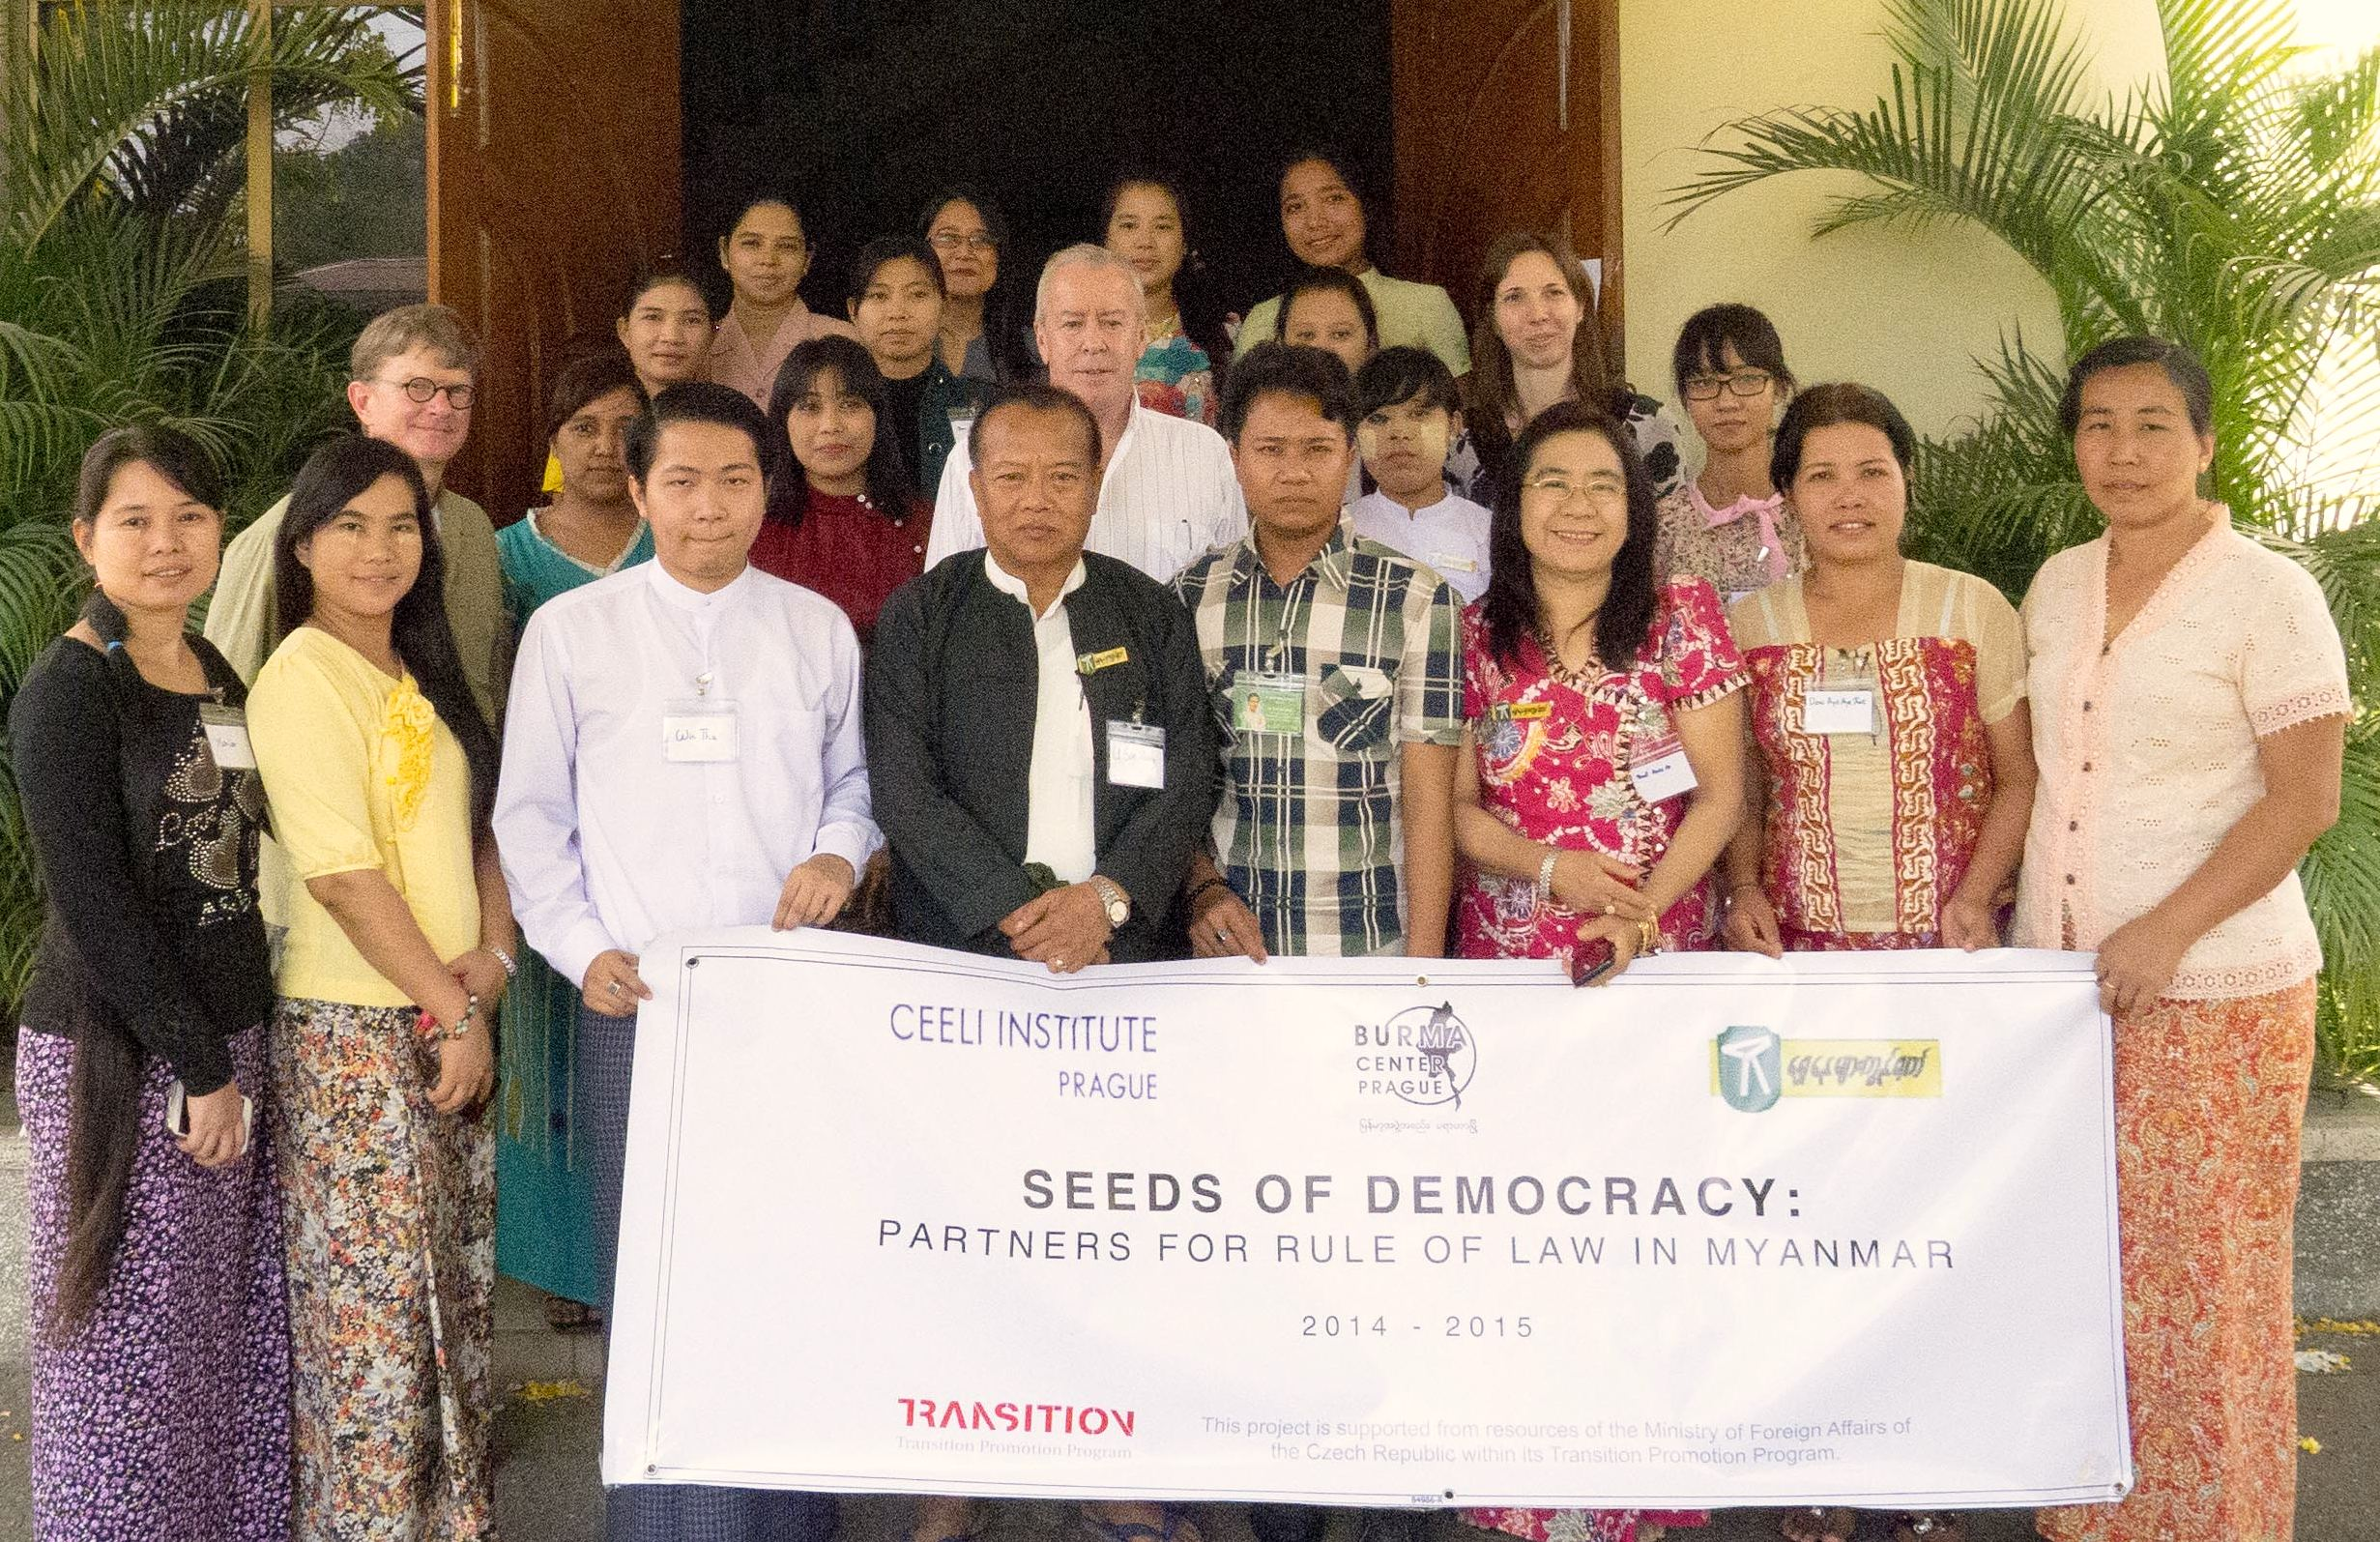 Myanmar international legal assistance consortium ilac burma center prague and ceeli institute together with members of the myanmar judicial community thecheapjerseys Gallery